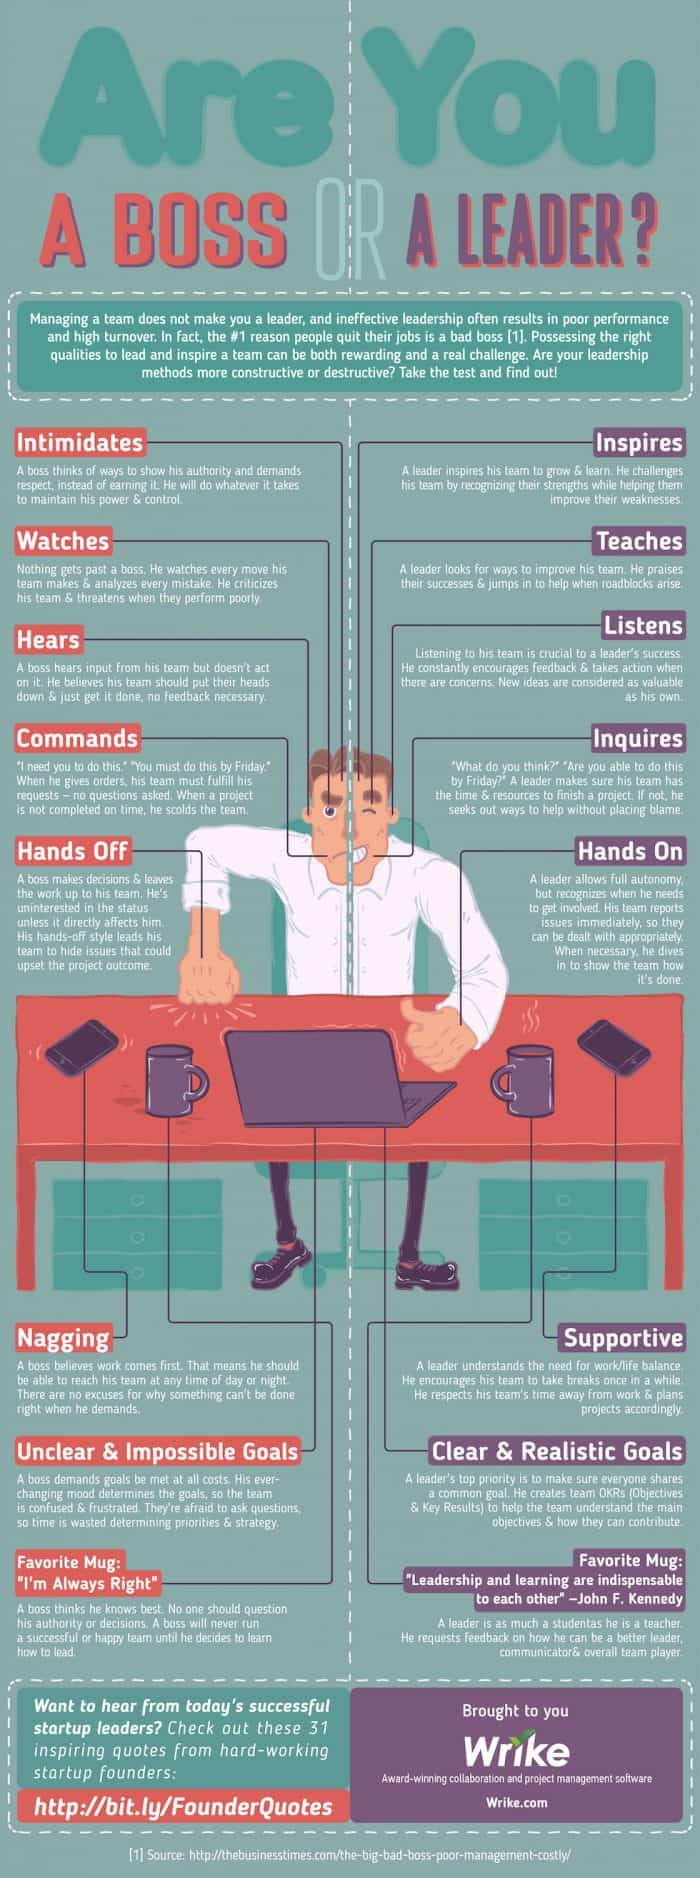 typical traits of A Boss Or A Leader Infographic